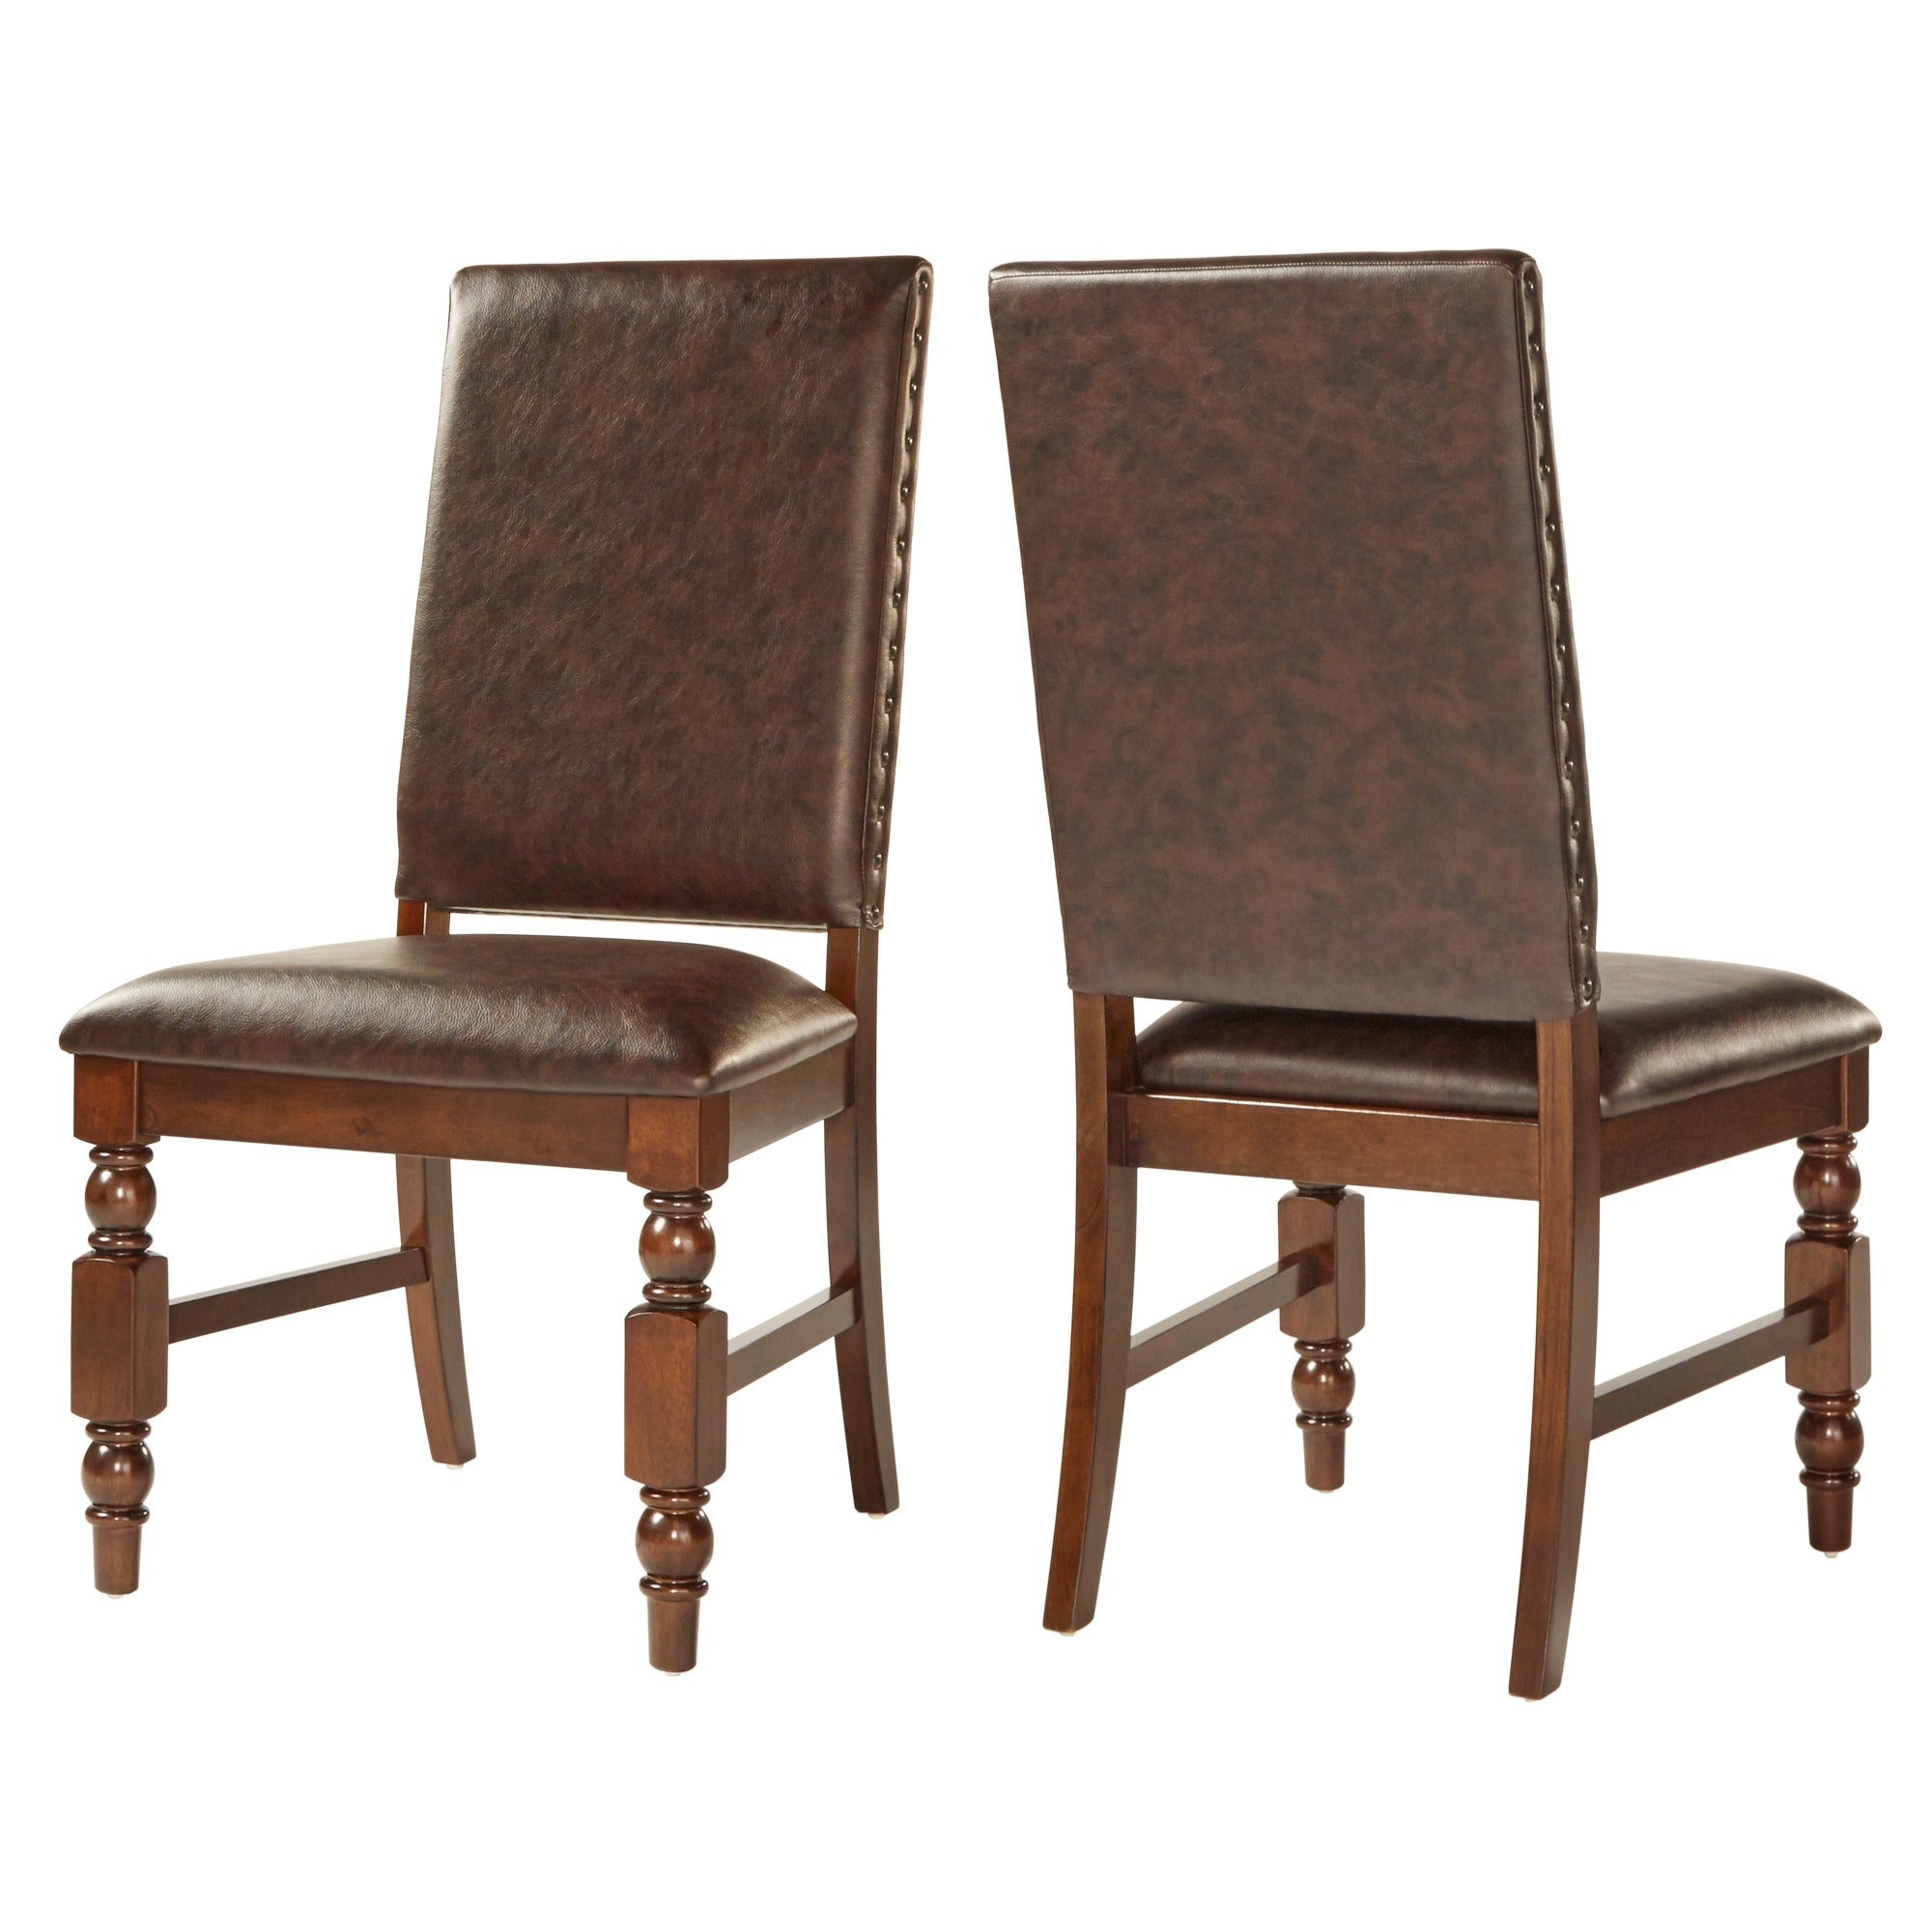 Inspire Q Andorra Velvet And Faux Alligator Leather Dining: Flatiron Nailhead Upholstered Dining Chairs (Set Of 2) By